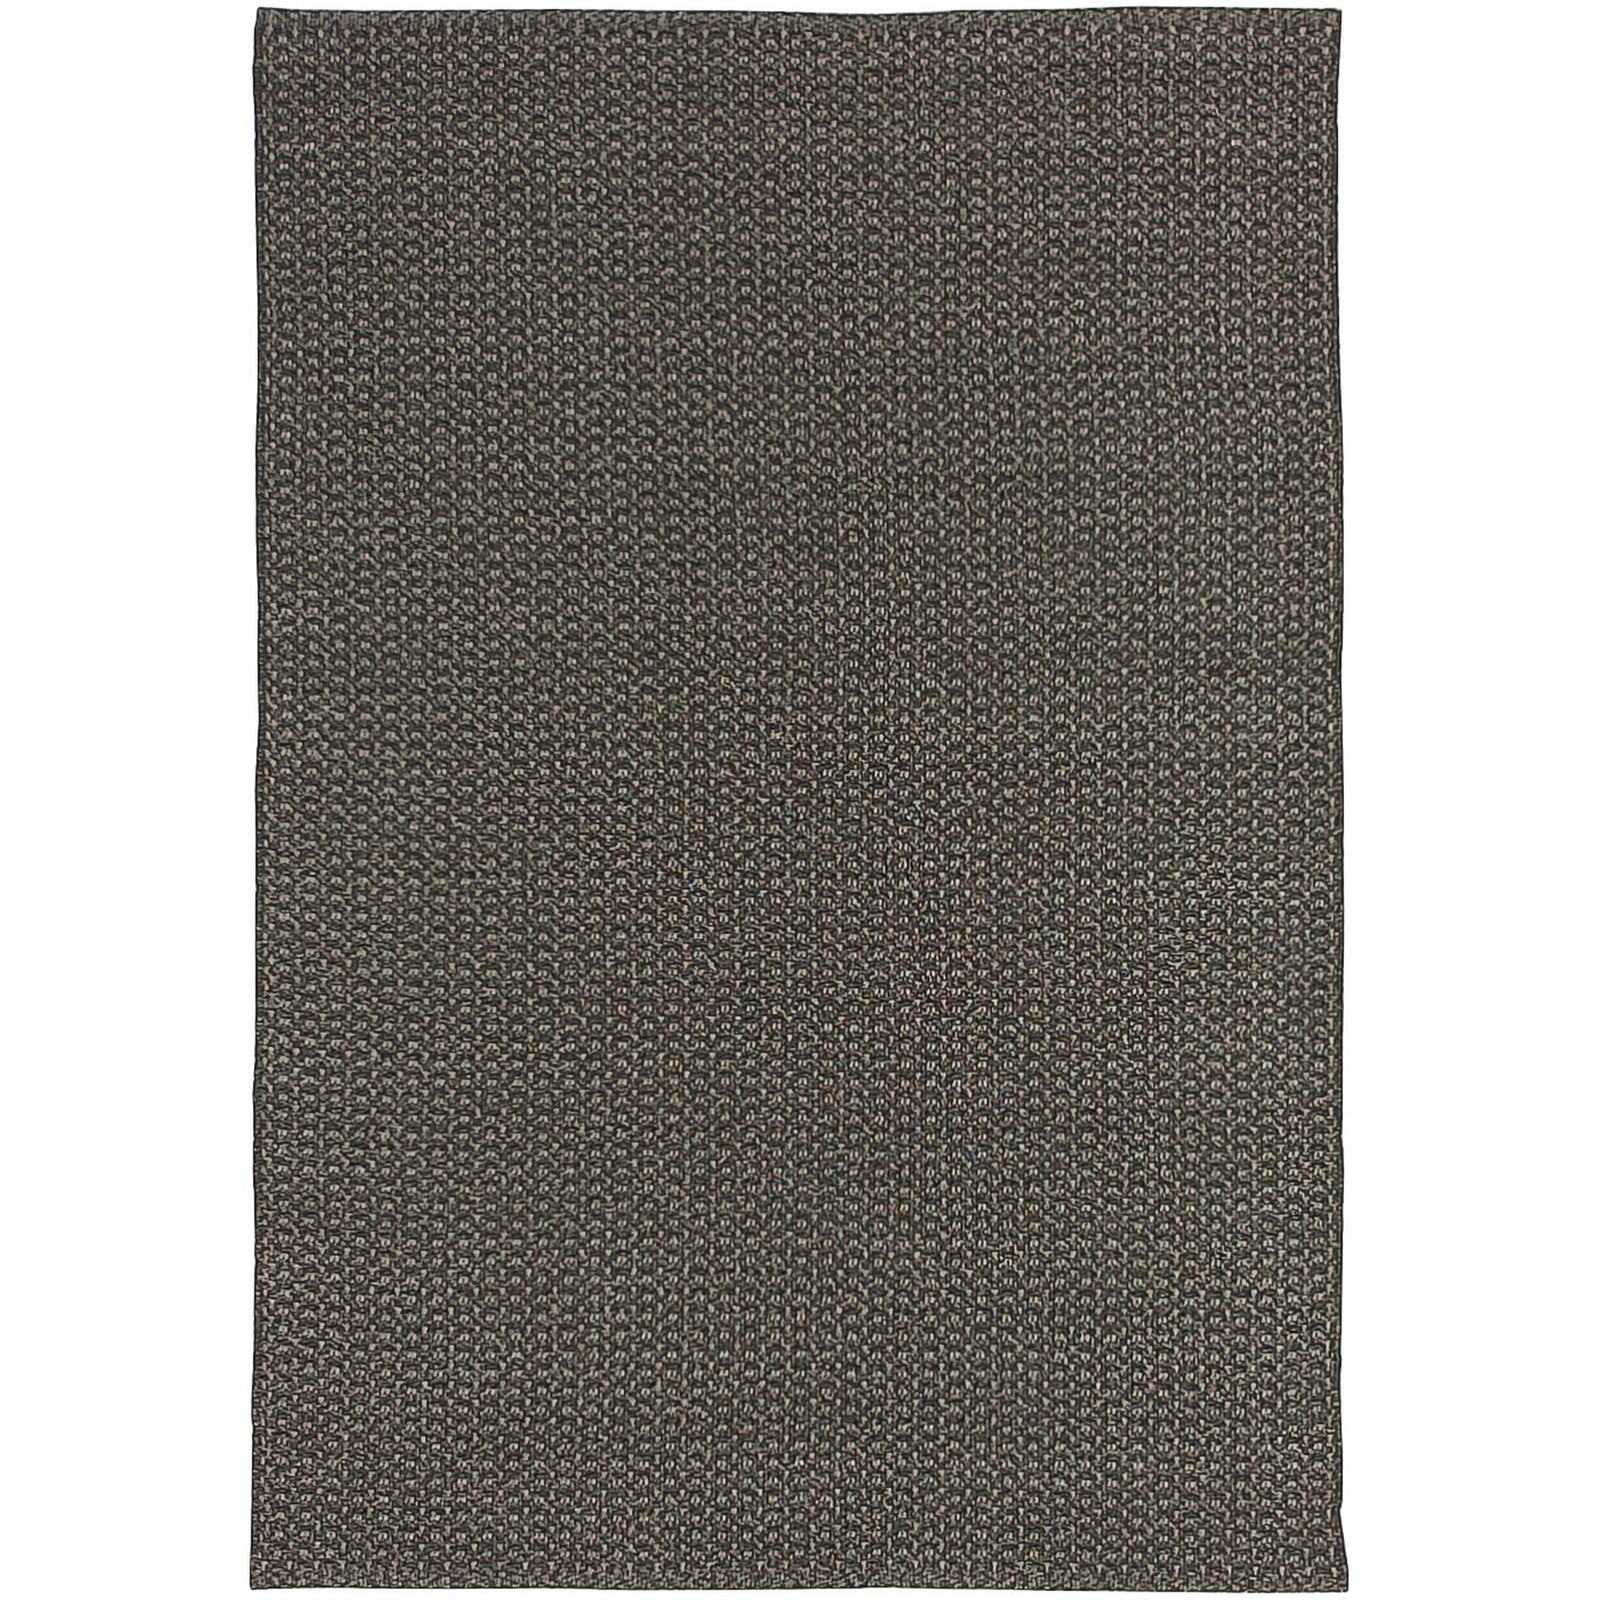 Seasons Rustic Hand Braided Indoor/Outdoor Rug, 300x400cm, Black Ink